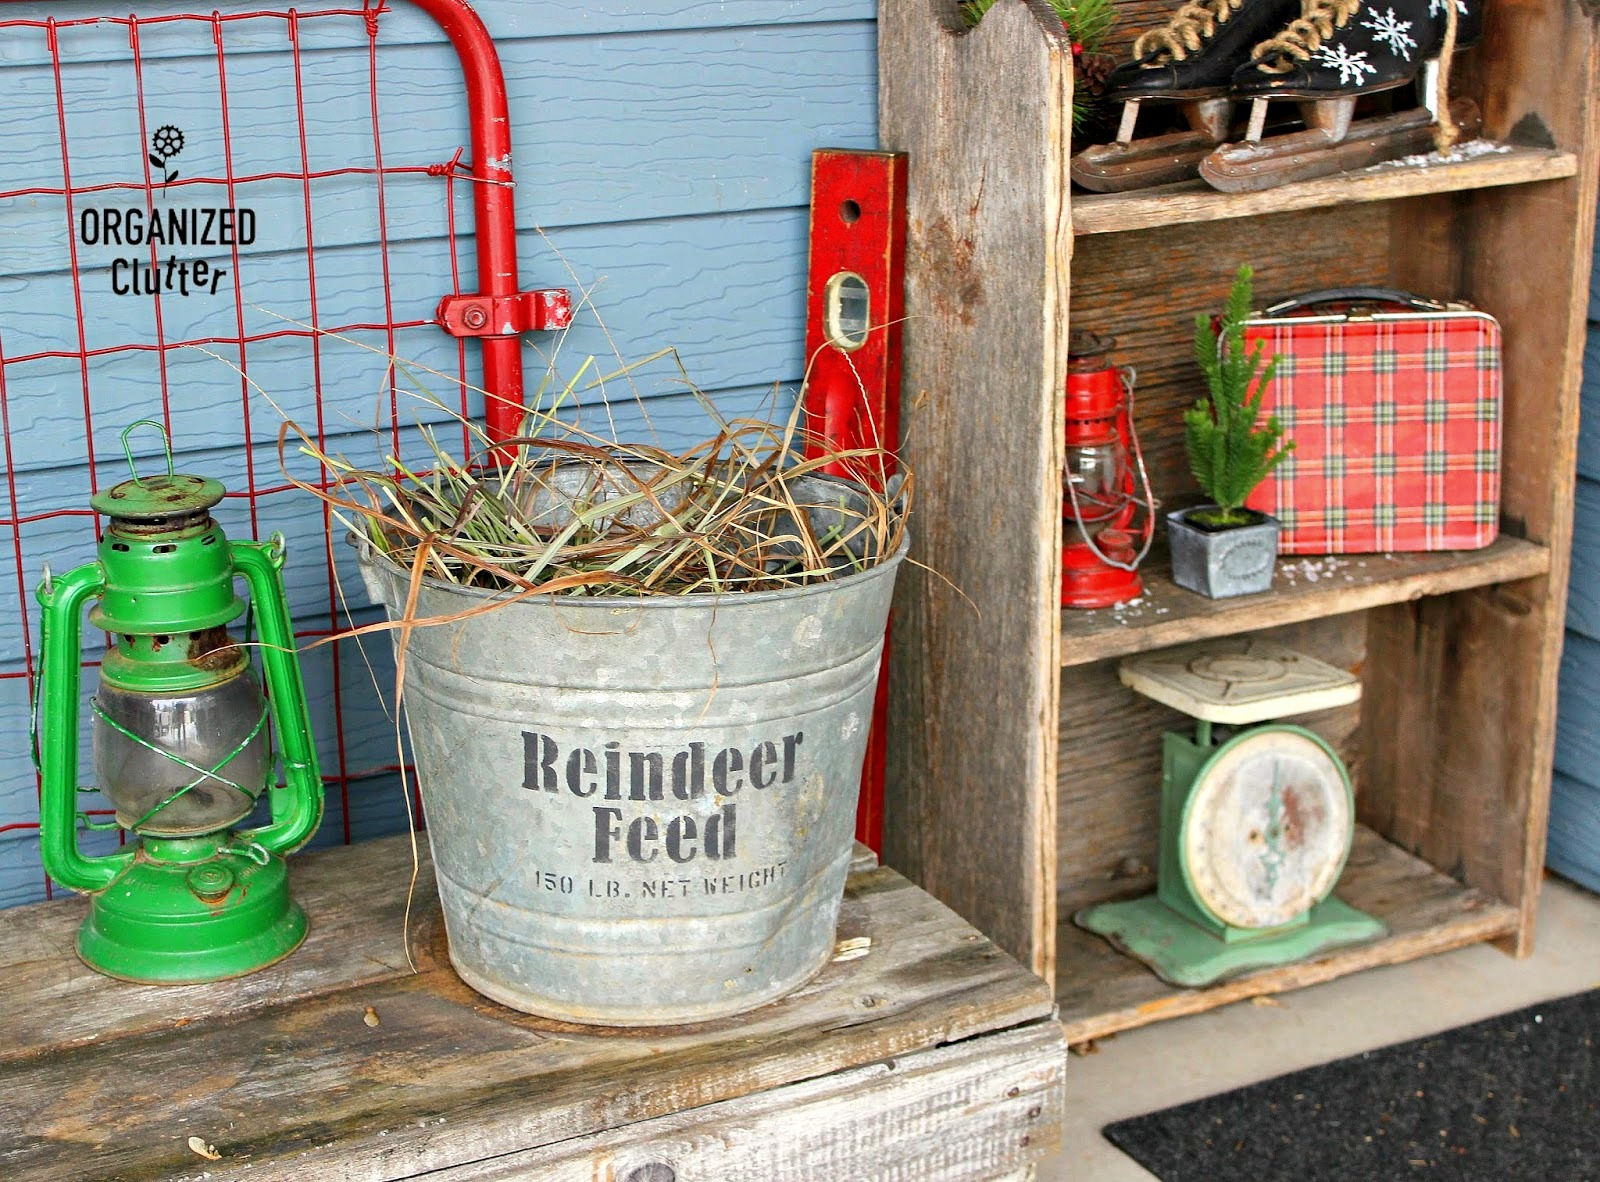 Reindeer Feed Christmas bucket by Organized Clutter, featured on Funky Junk Interiors